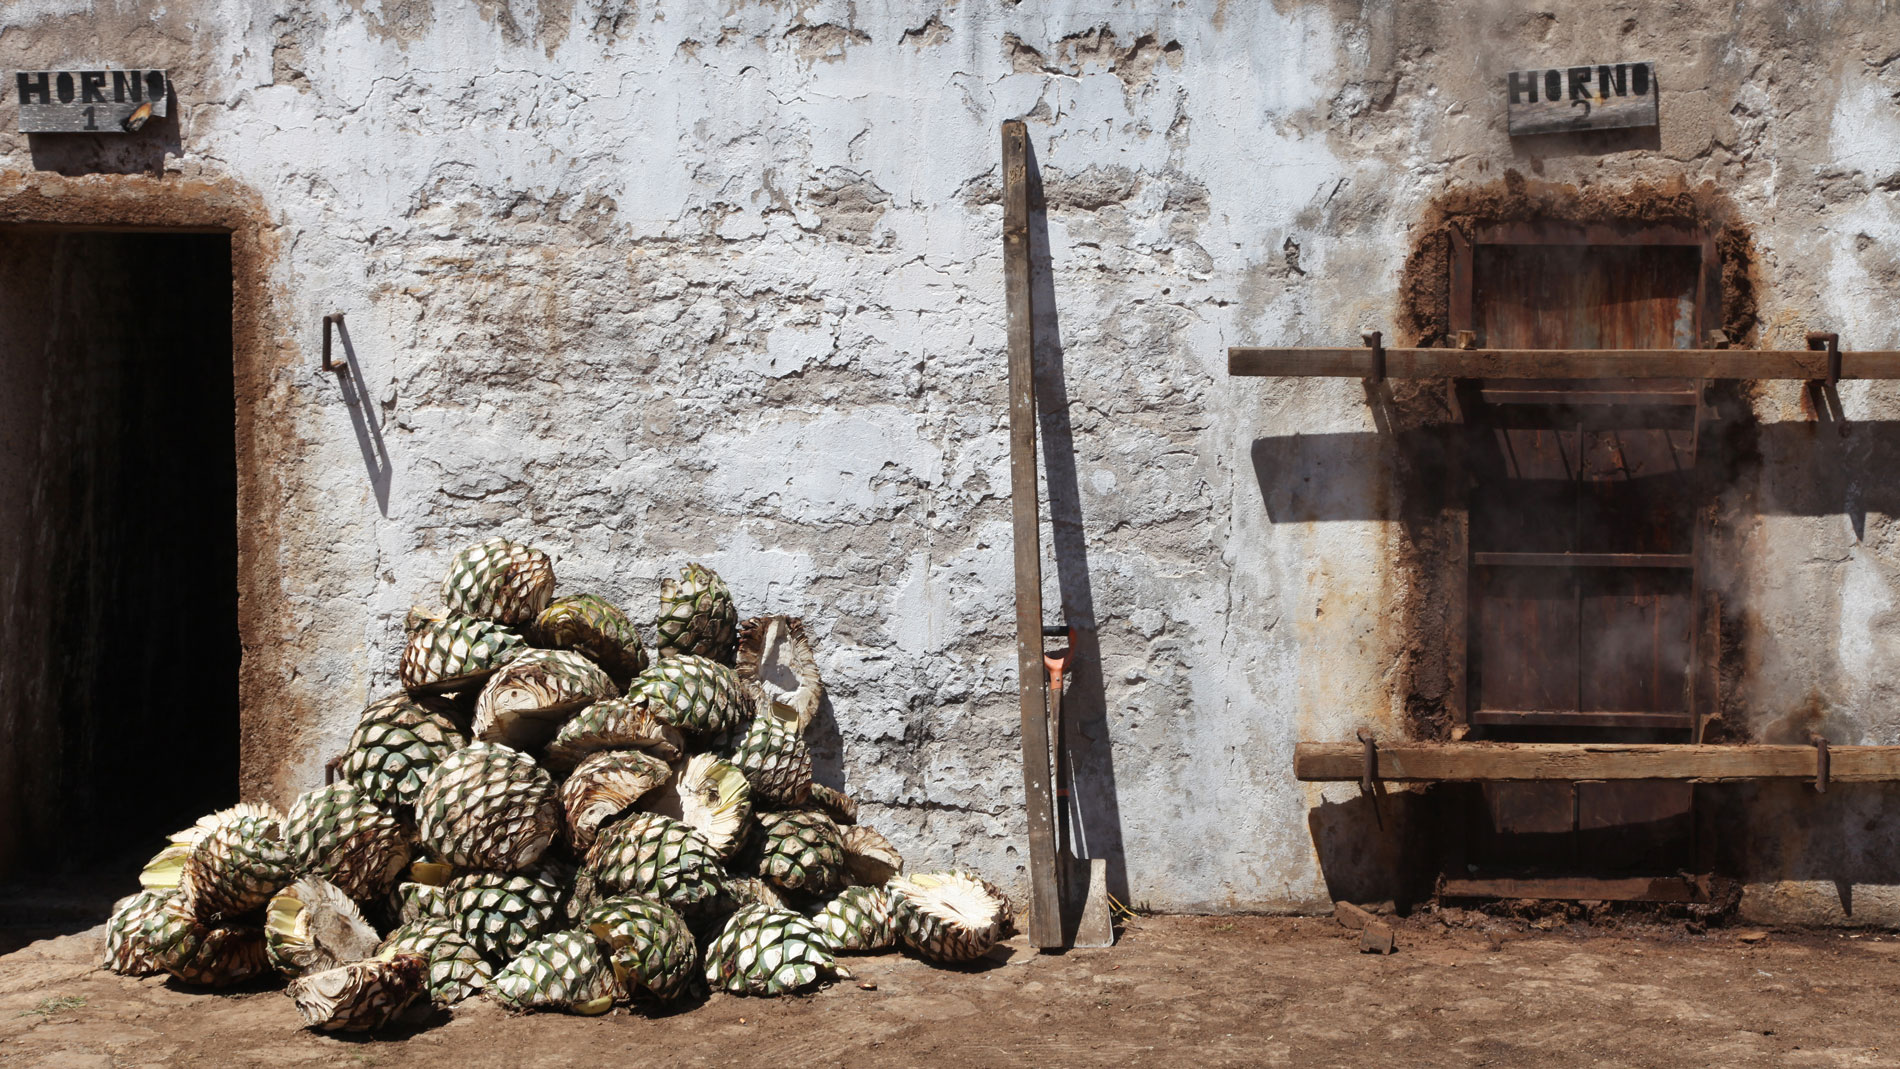 Tequila Production in Mexico